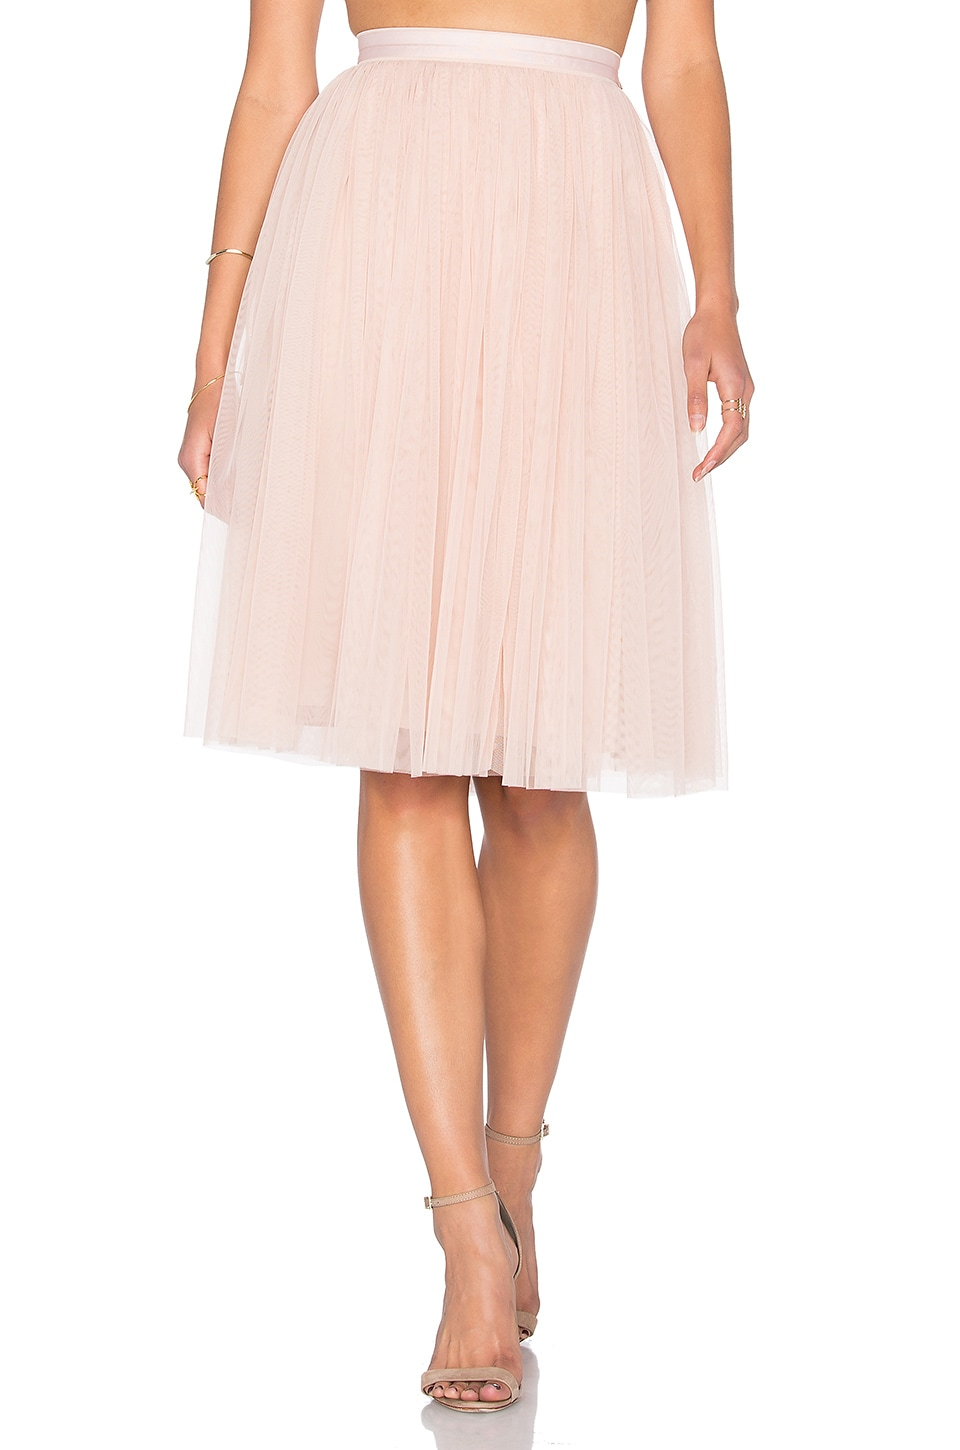 Needle & Thread Tulle Midi Skirt in Blush